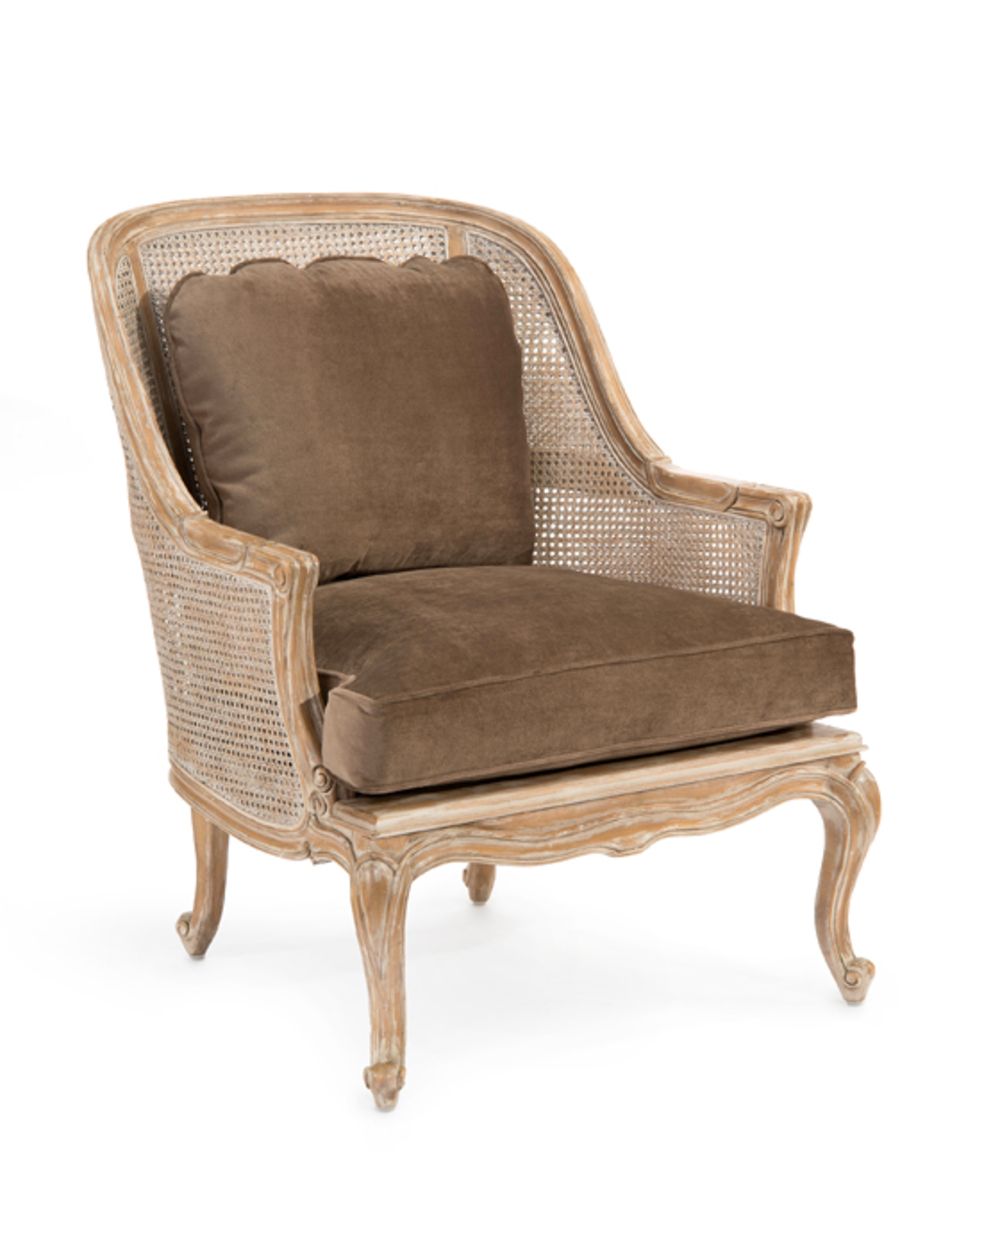 John Richard Collection - Cane Back Bergere Arm Chair